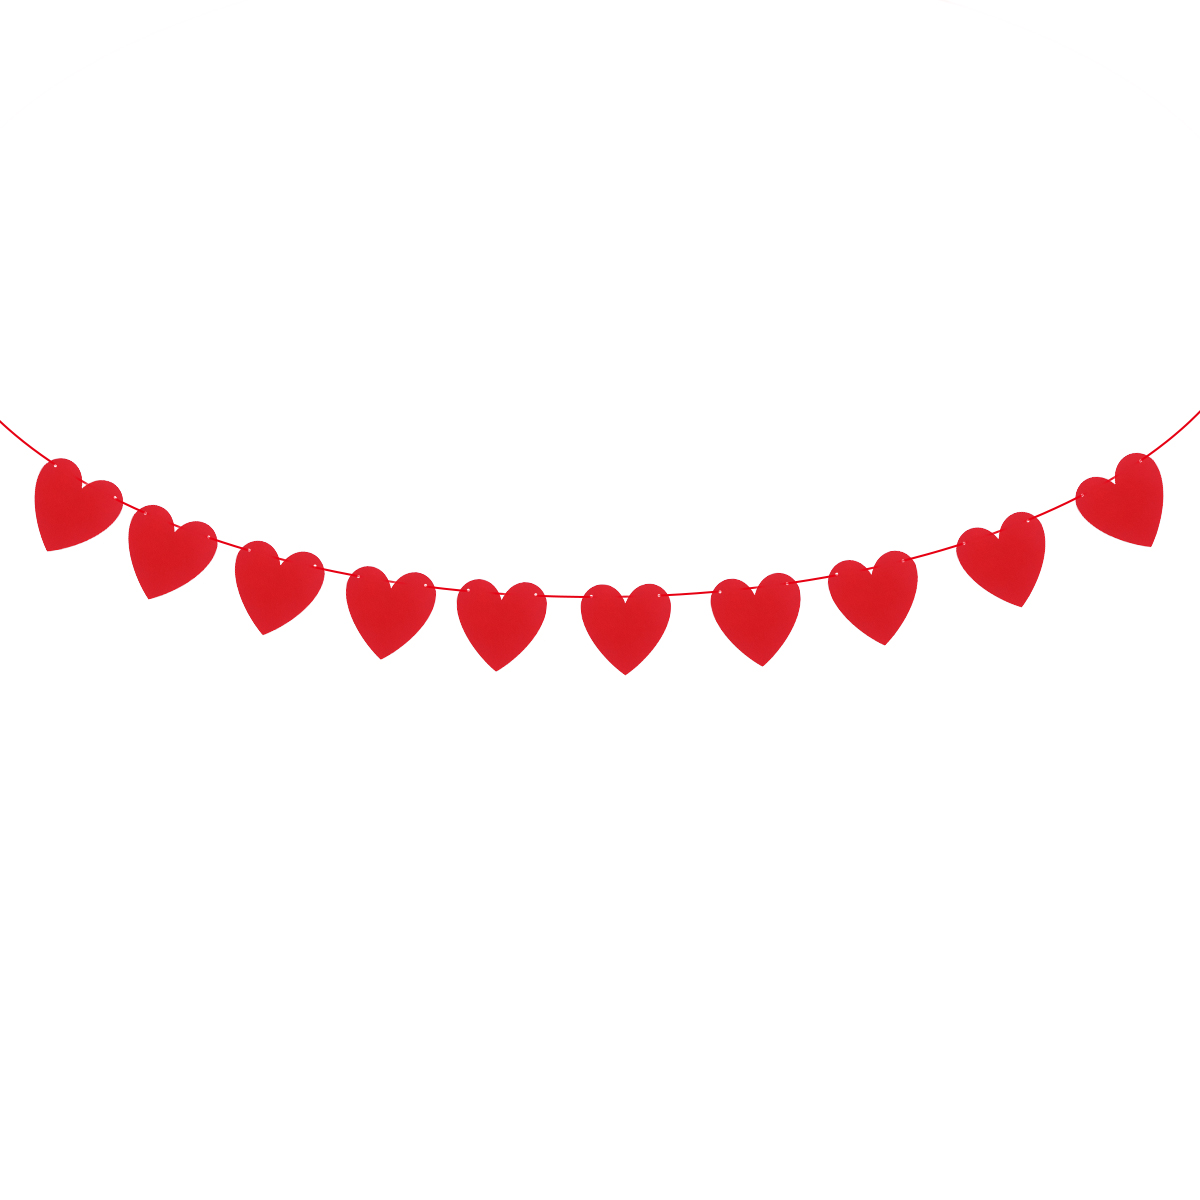 Us 1 5 37 Off 3 Meters Hanging Decor Red Love Heart Bunting Banners Garland Wedding Valentines Day Birthday Bridal Shower Marriage Proposal In Party